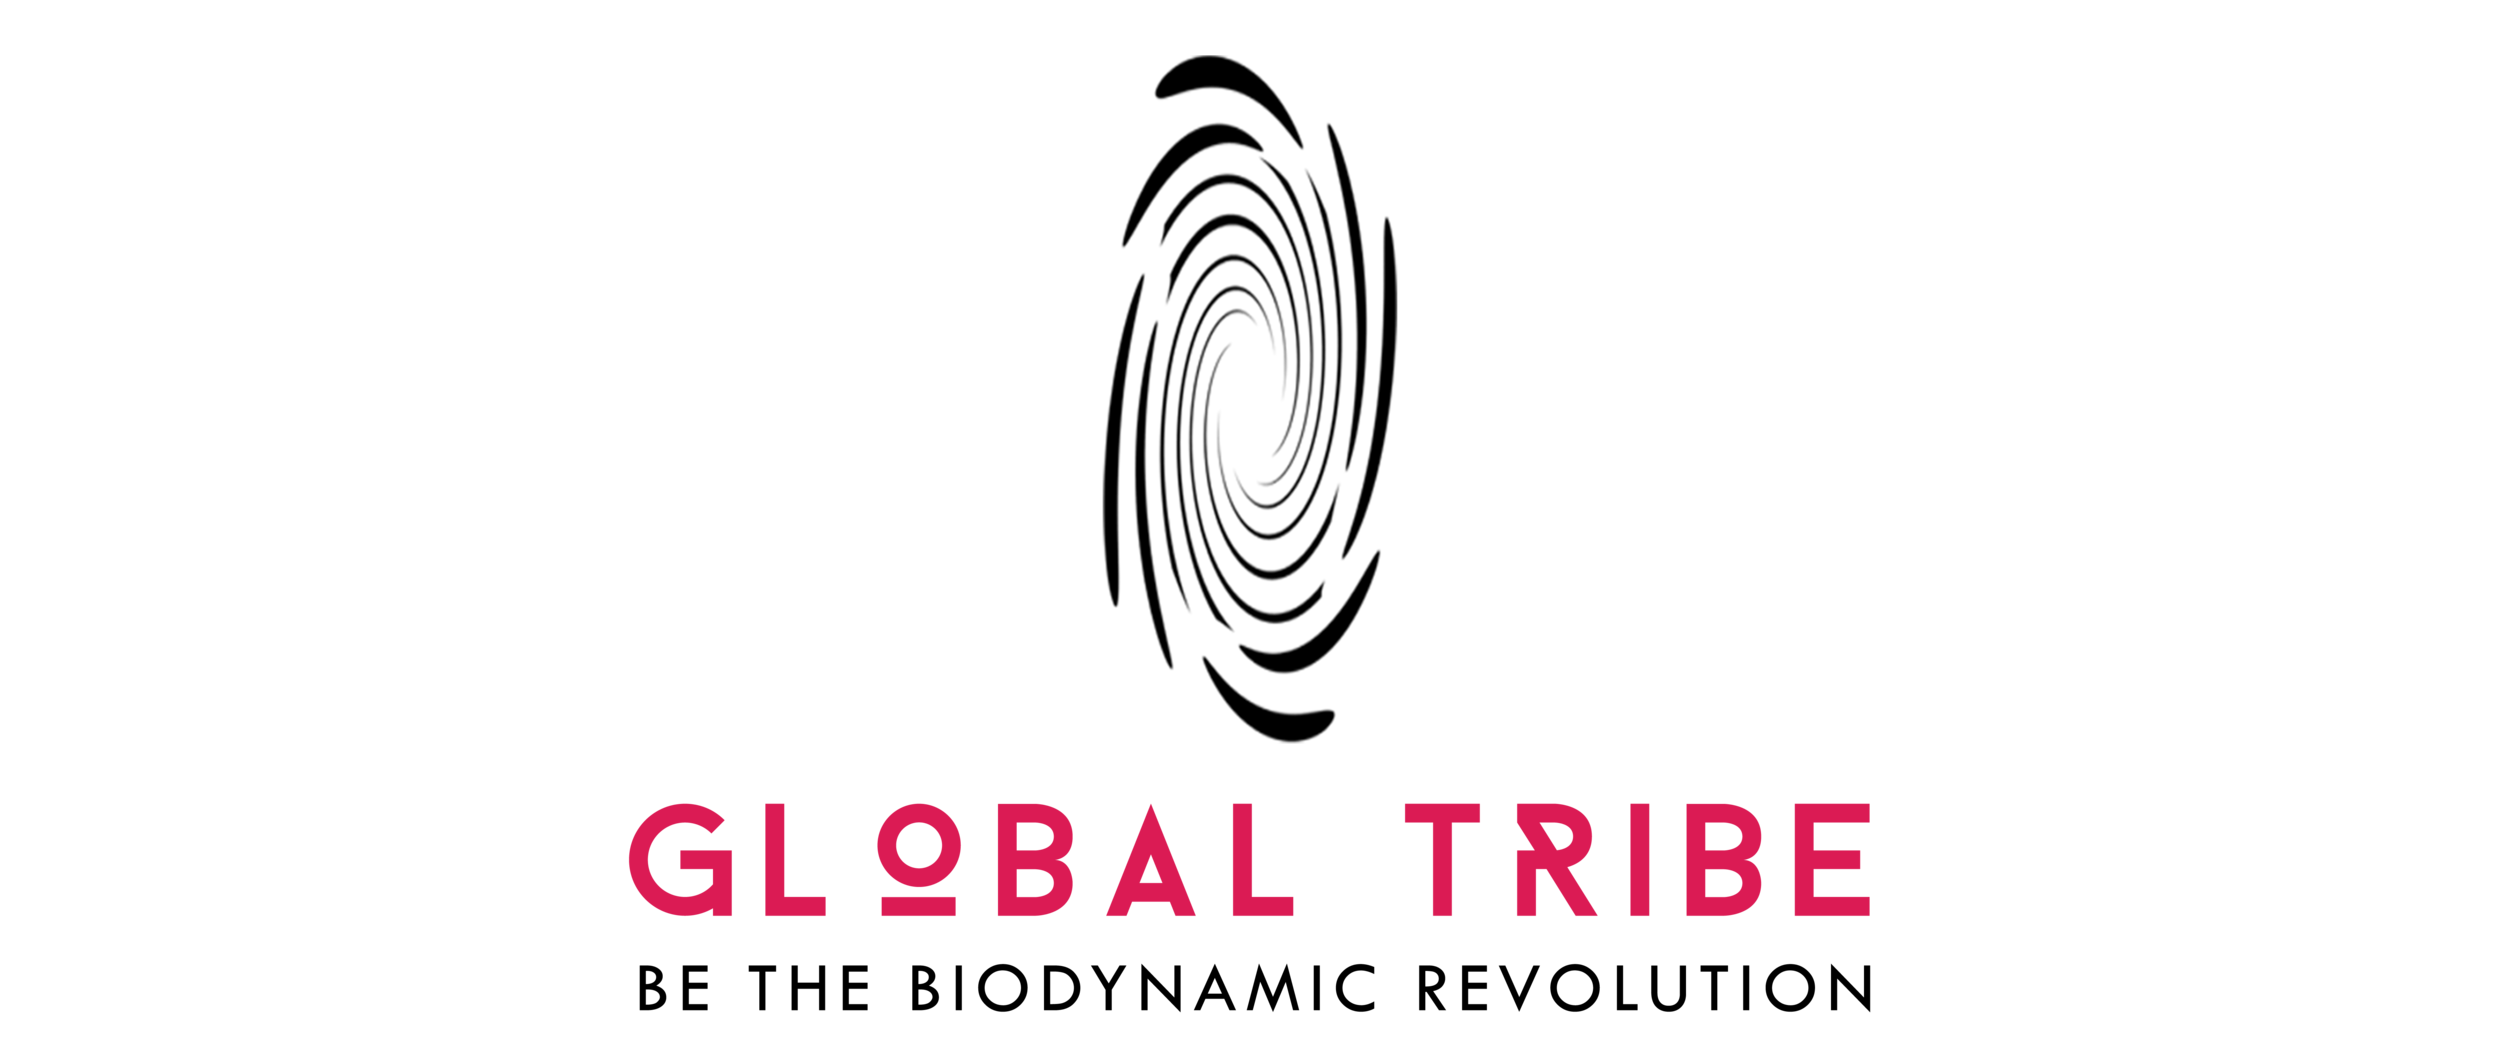 Global-Tribe-banner.png